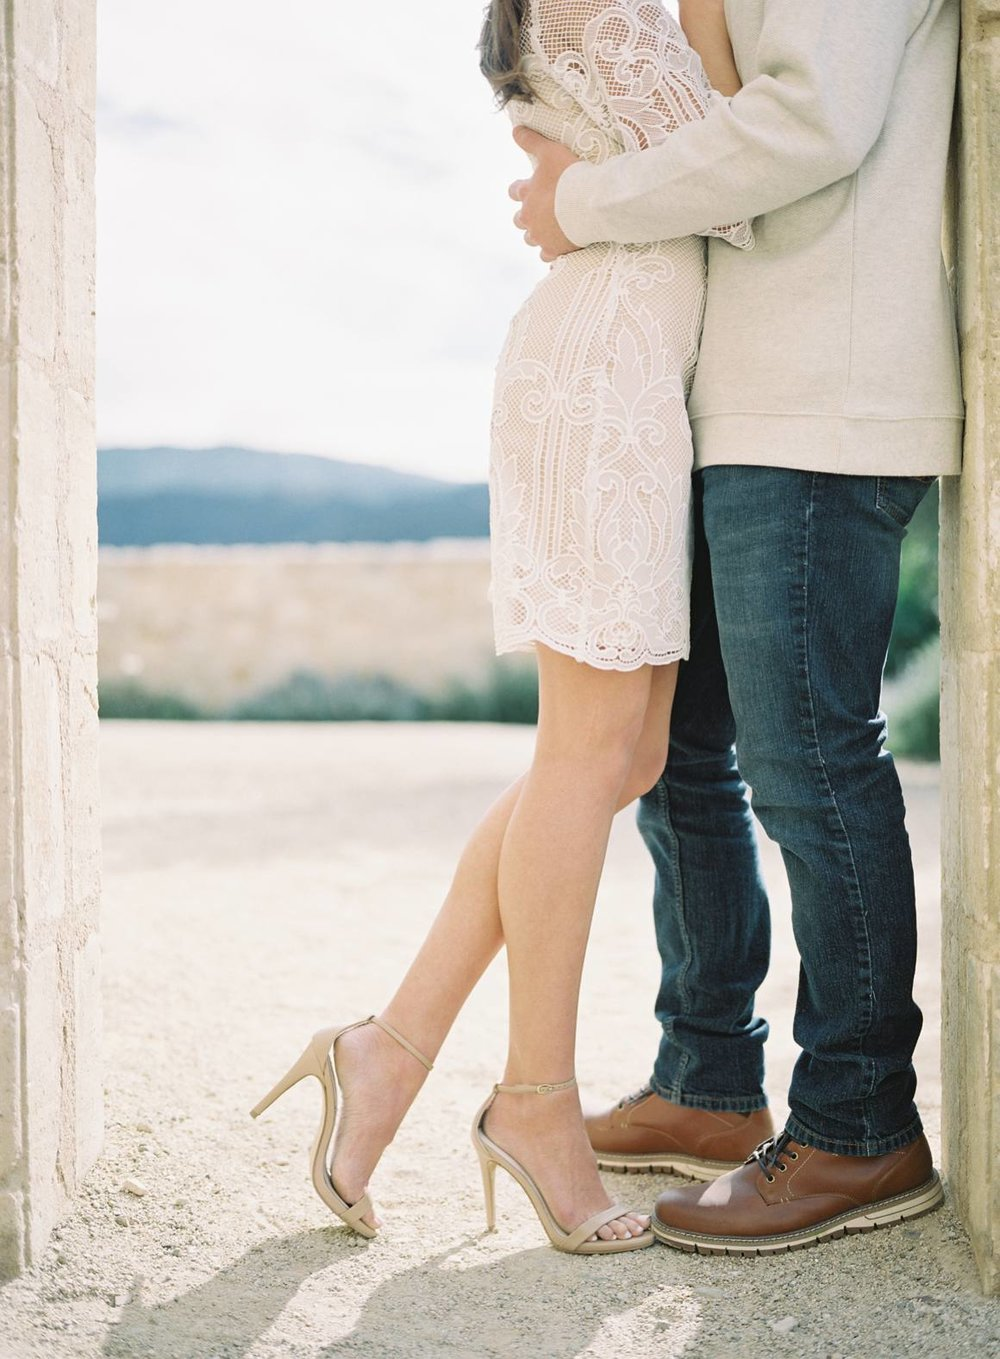 HeatherPayne_CaliforniaEngagement_158.jpg